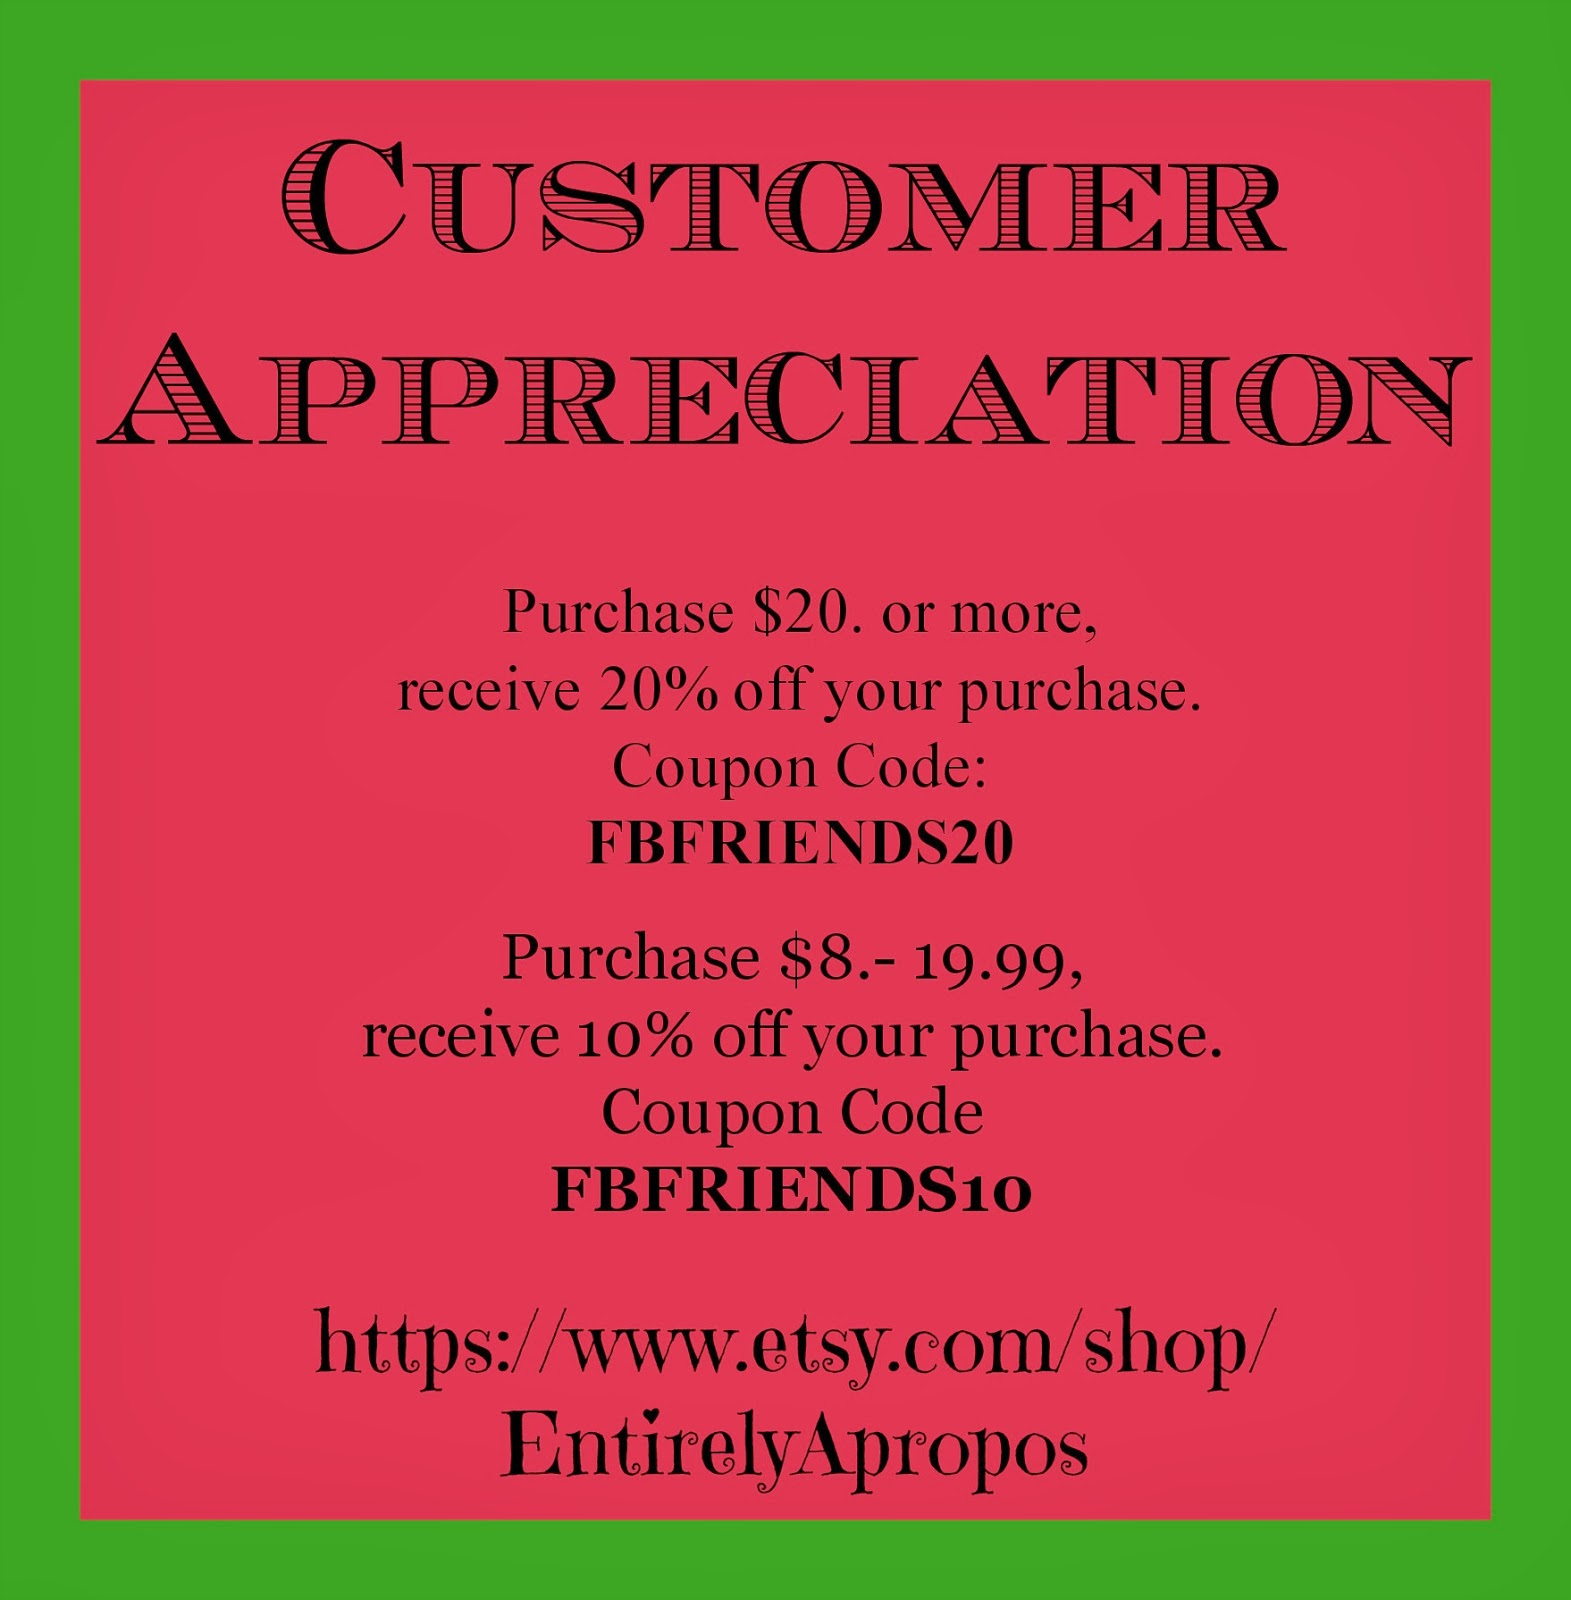 Etsy coupon code december 2019